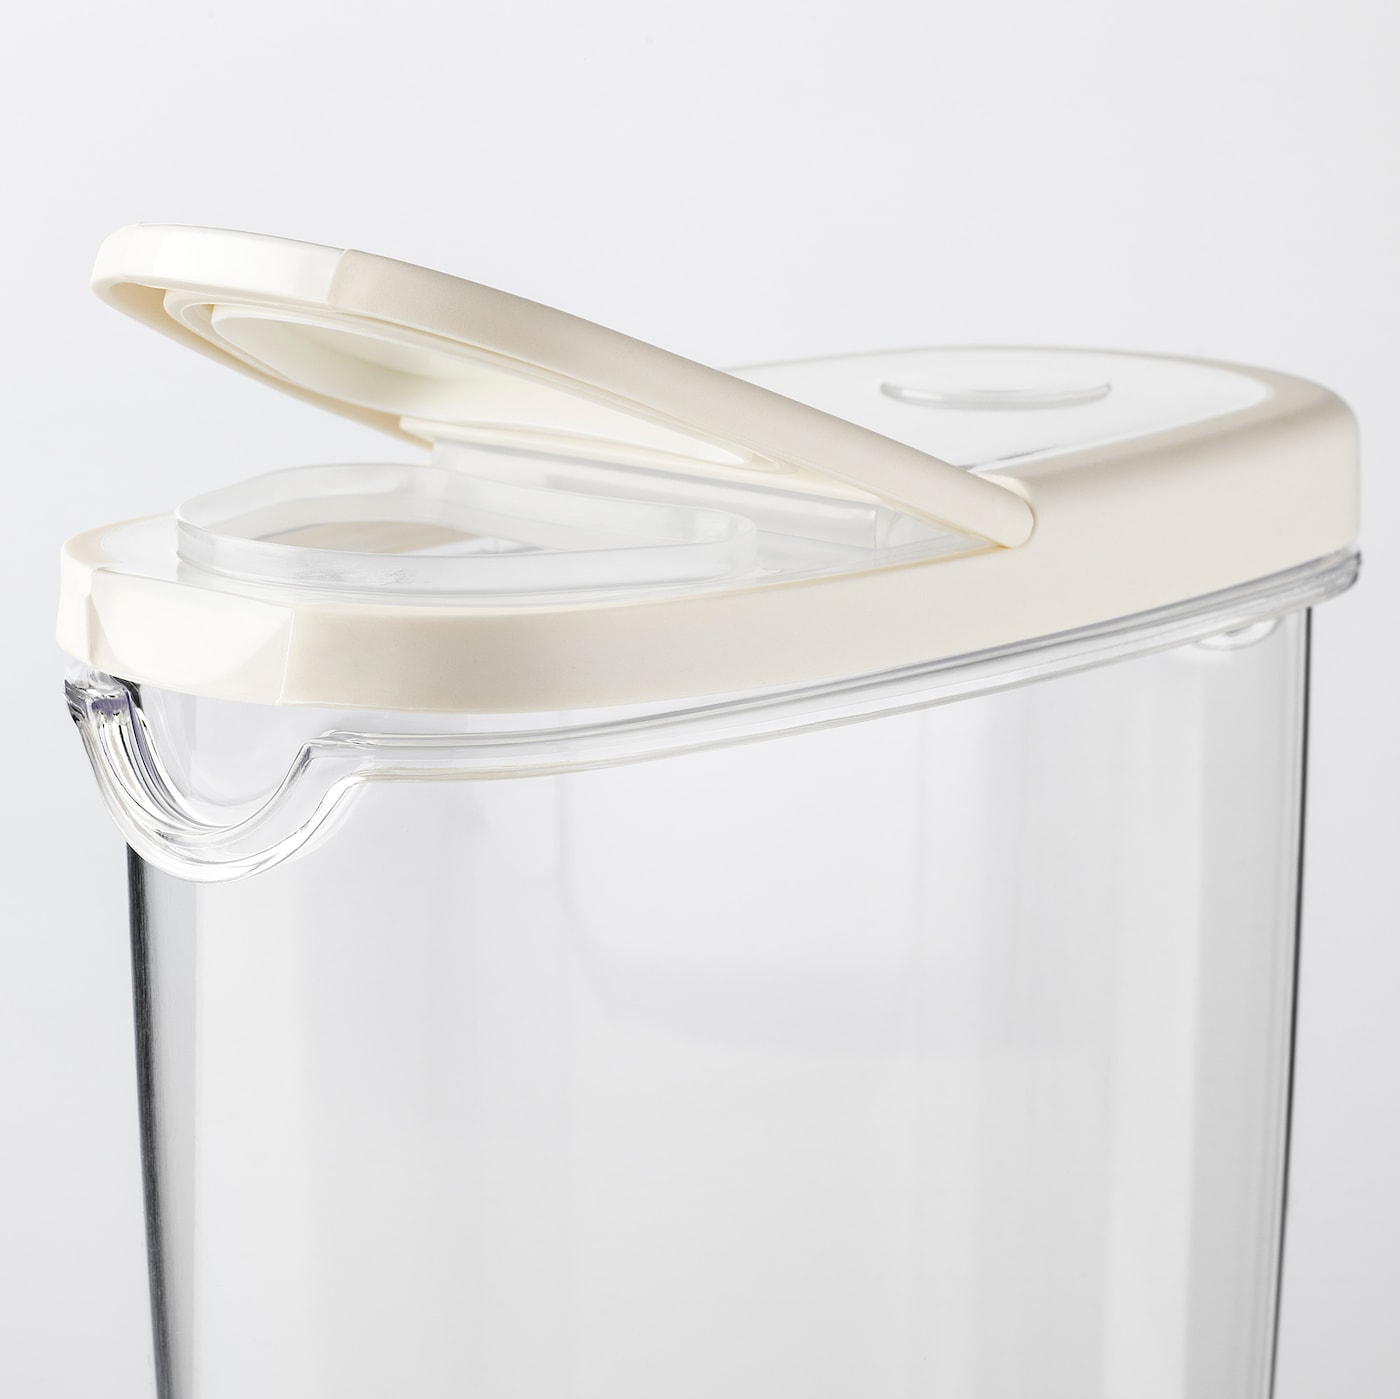 Boite À Cables Ikea ikea 365+ dry food jar with lid - transparent, white 1.3 l